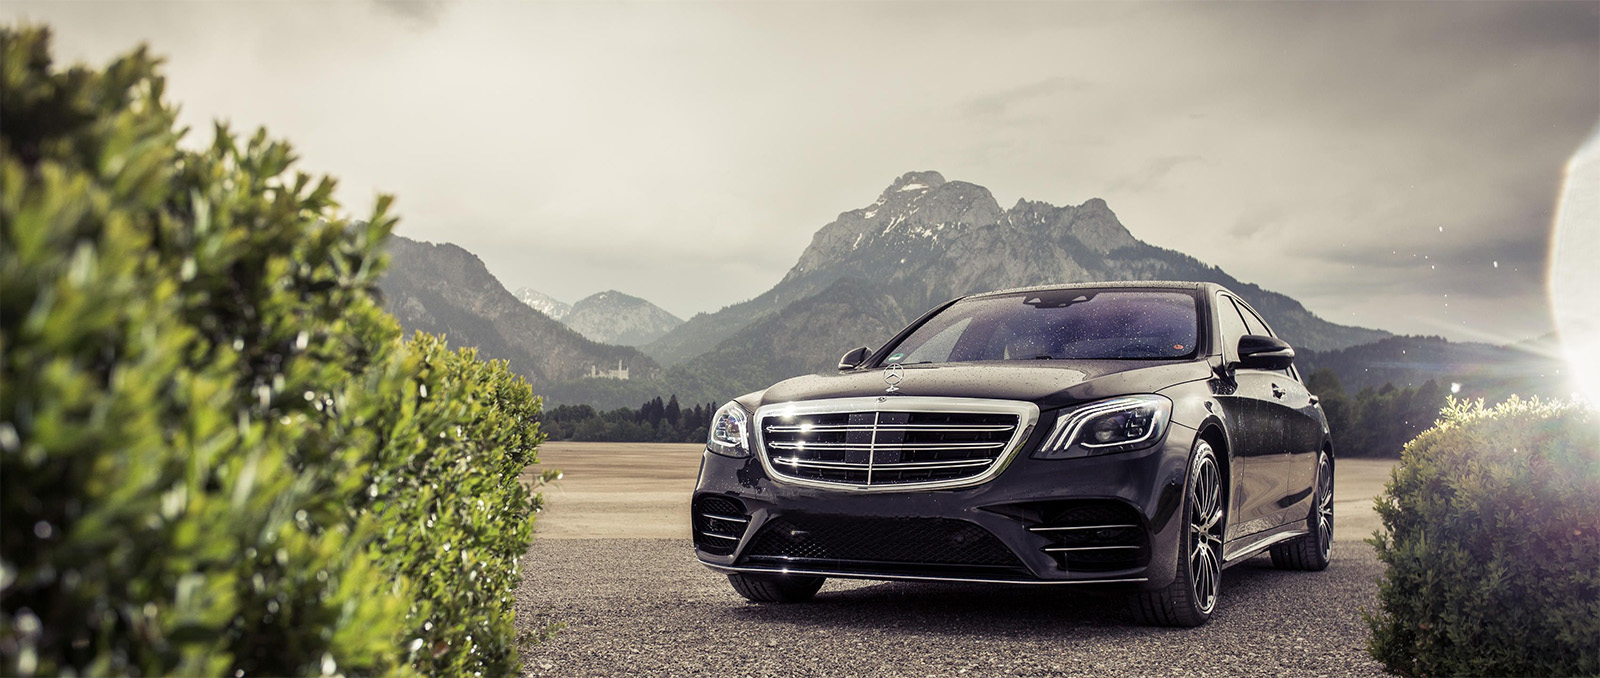 Mercedes S Class Business Transfer